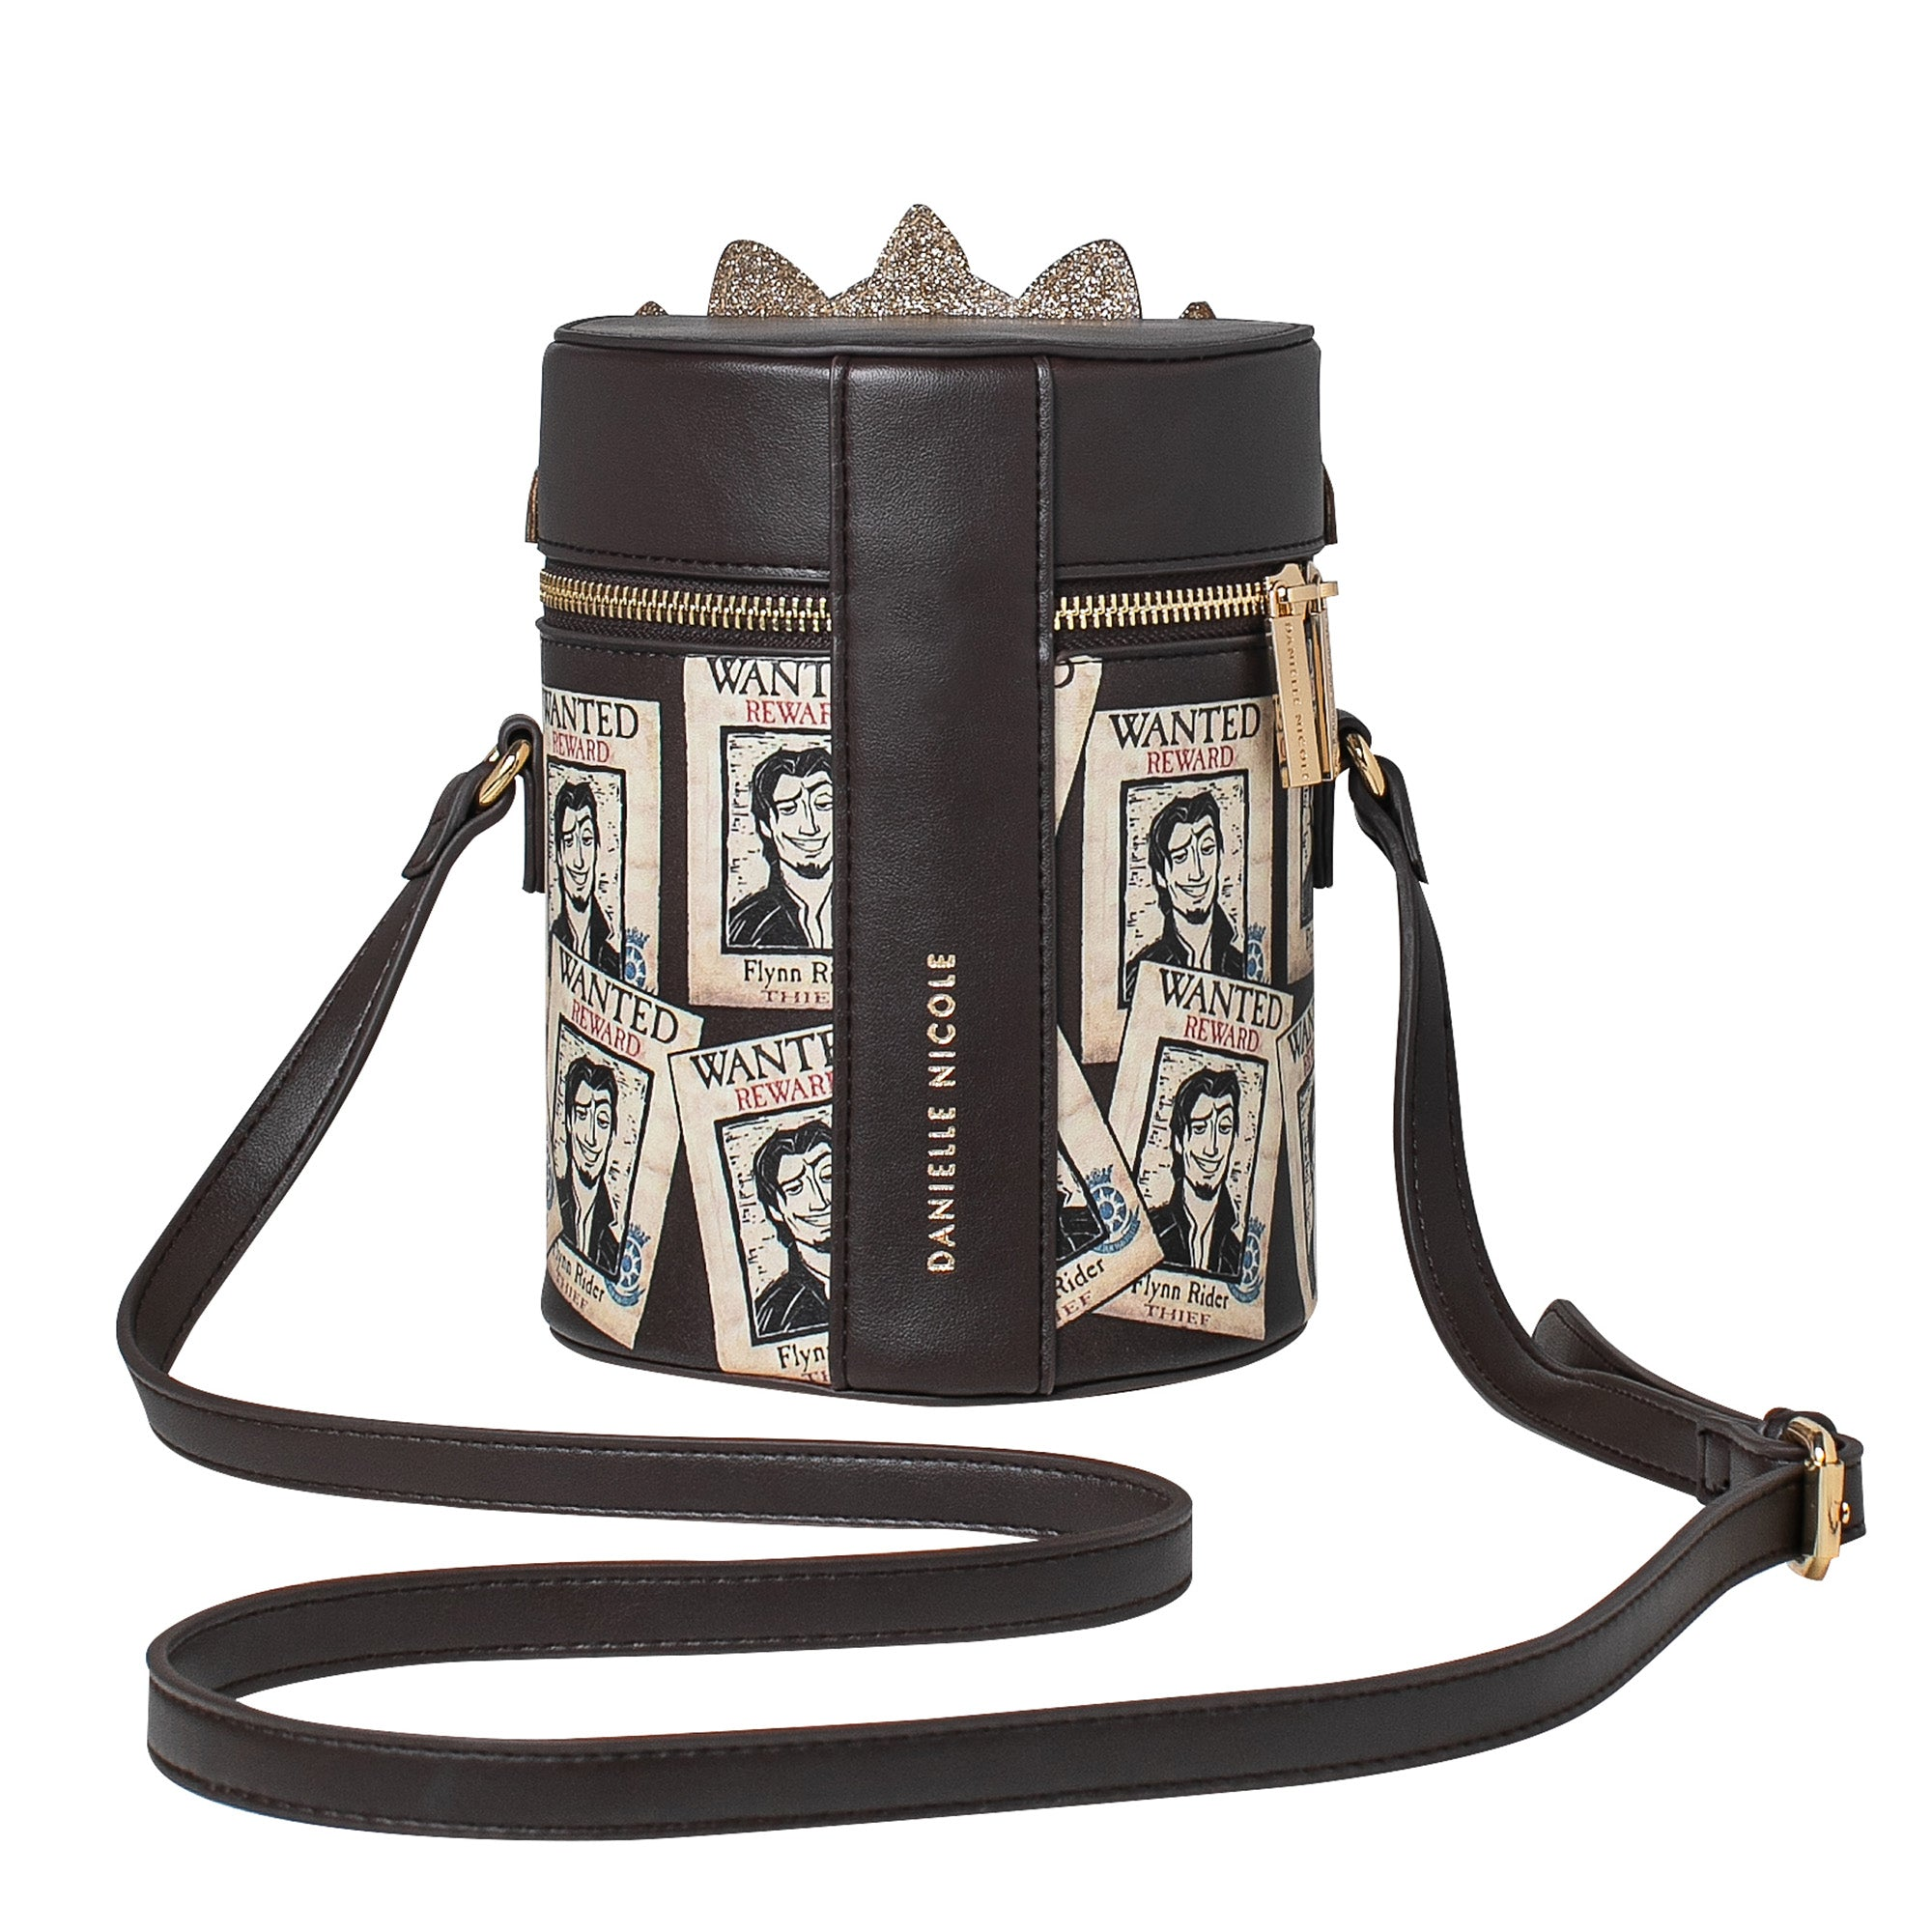 Tangled Cross Body Bag - Wanted